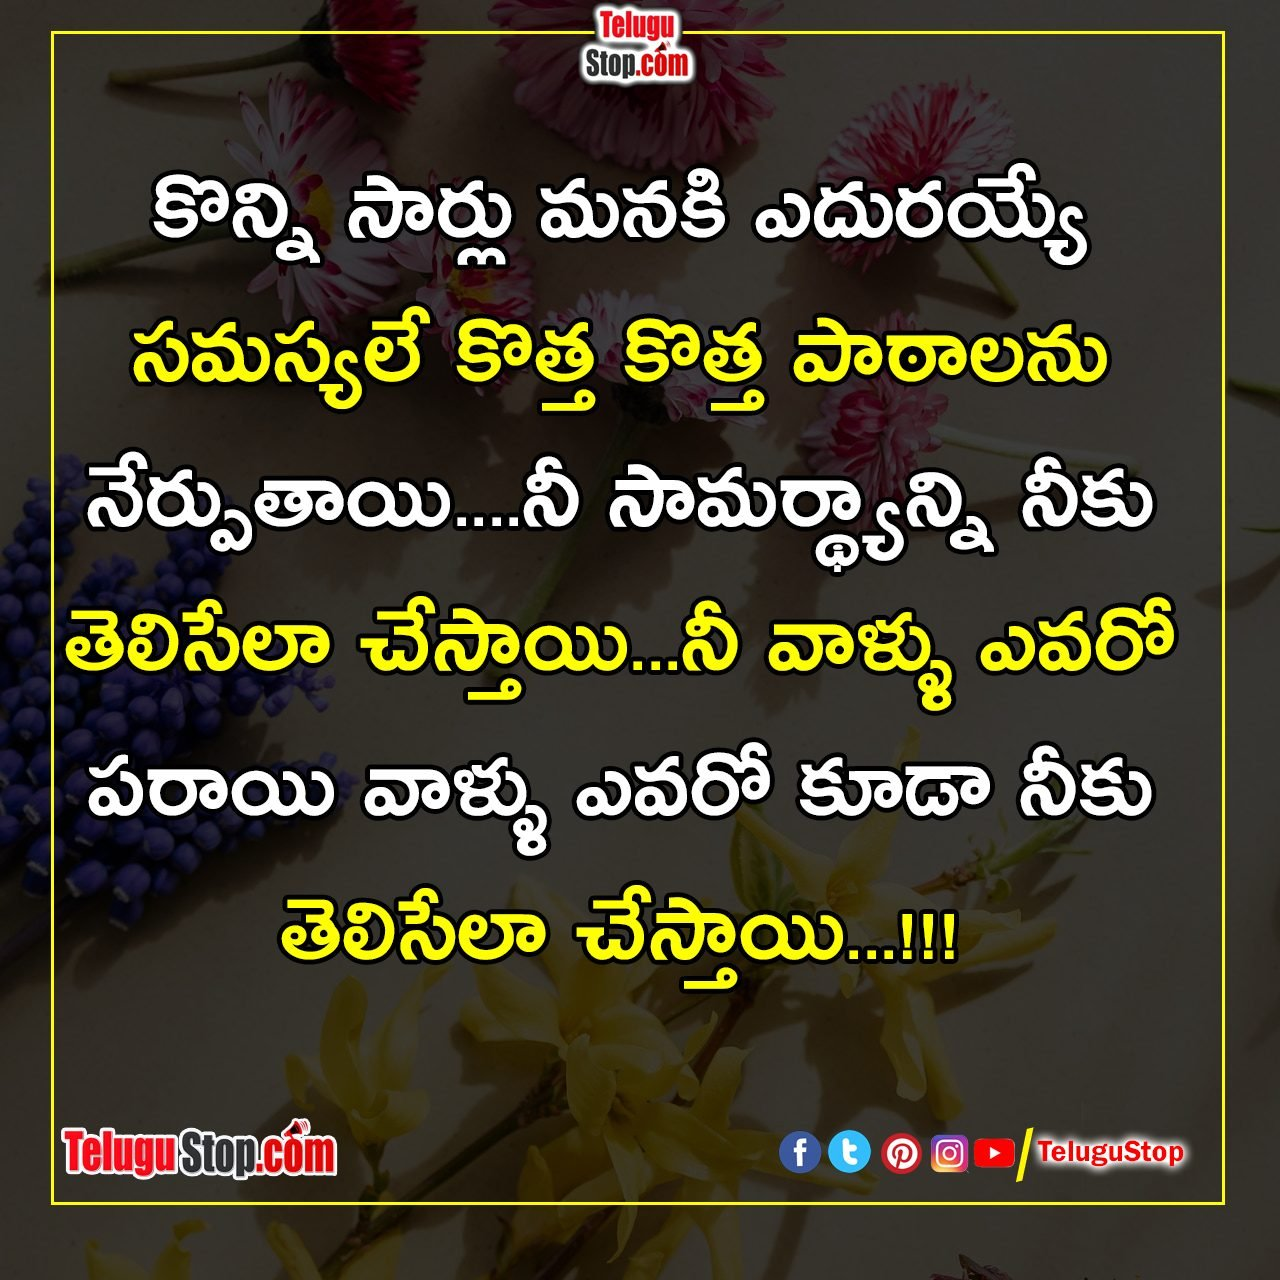 Telugu Fact Related Inspiriational Quotes, The Affections In The Mind Affections In The Mind Are Eternal Inspiriational Quotes, What Matters Is How Many Valuable Slopes We Have Inspiriational Quotes, Word Changes Man Inspirational Quotes-Telugu Daily Quotes - Inspirational/Motivational/Love/Friendship/Good Morning Quote